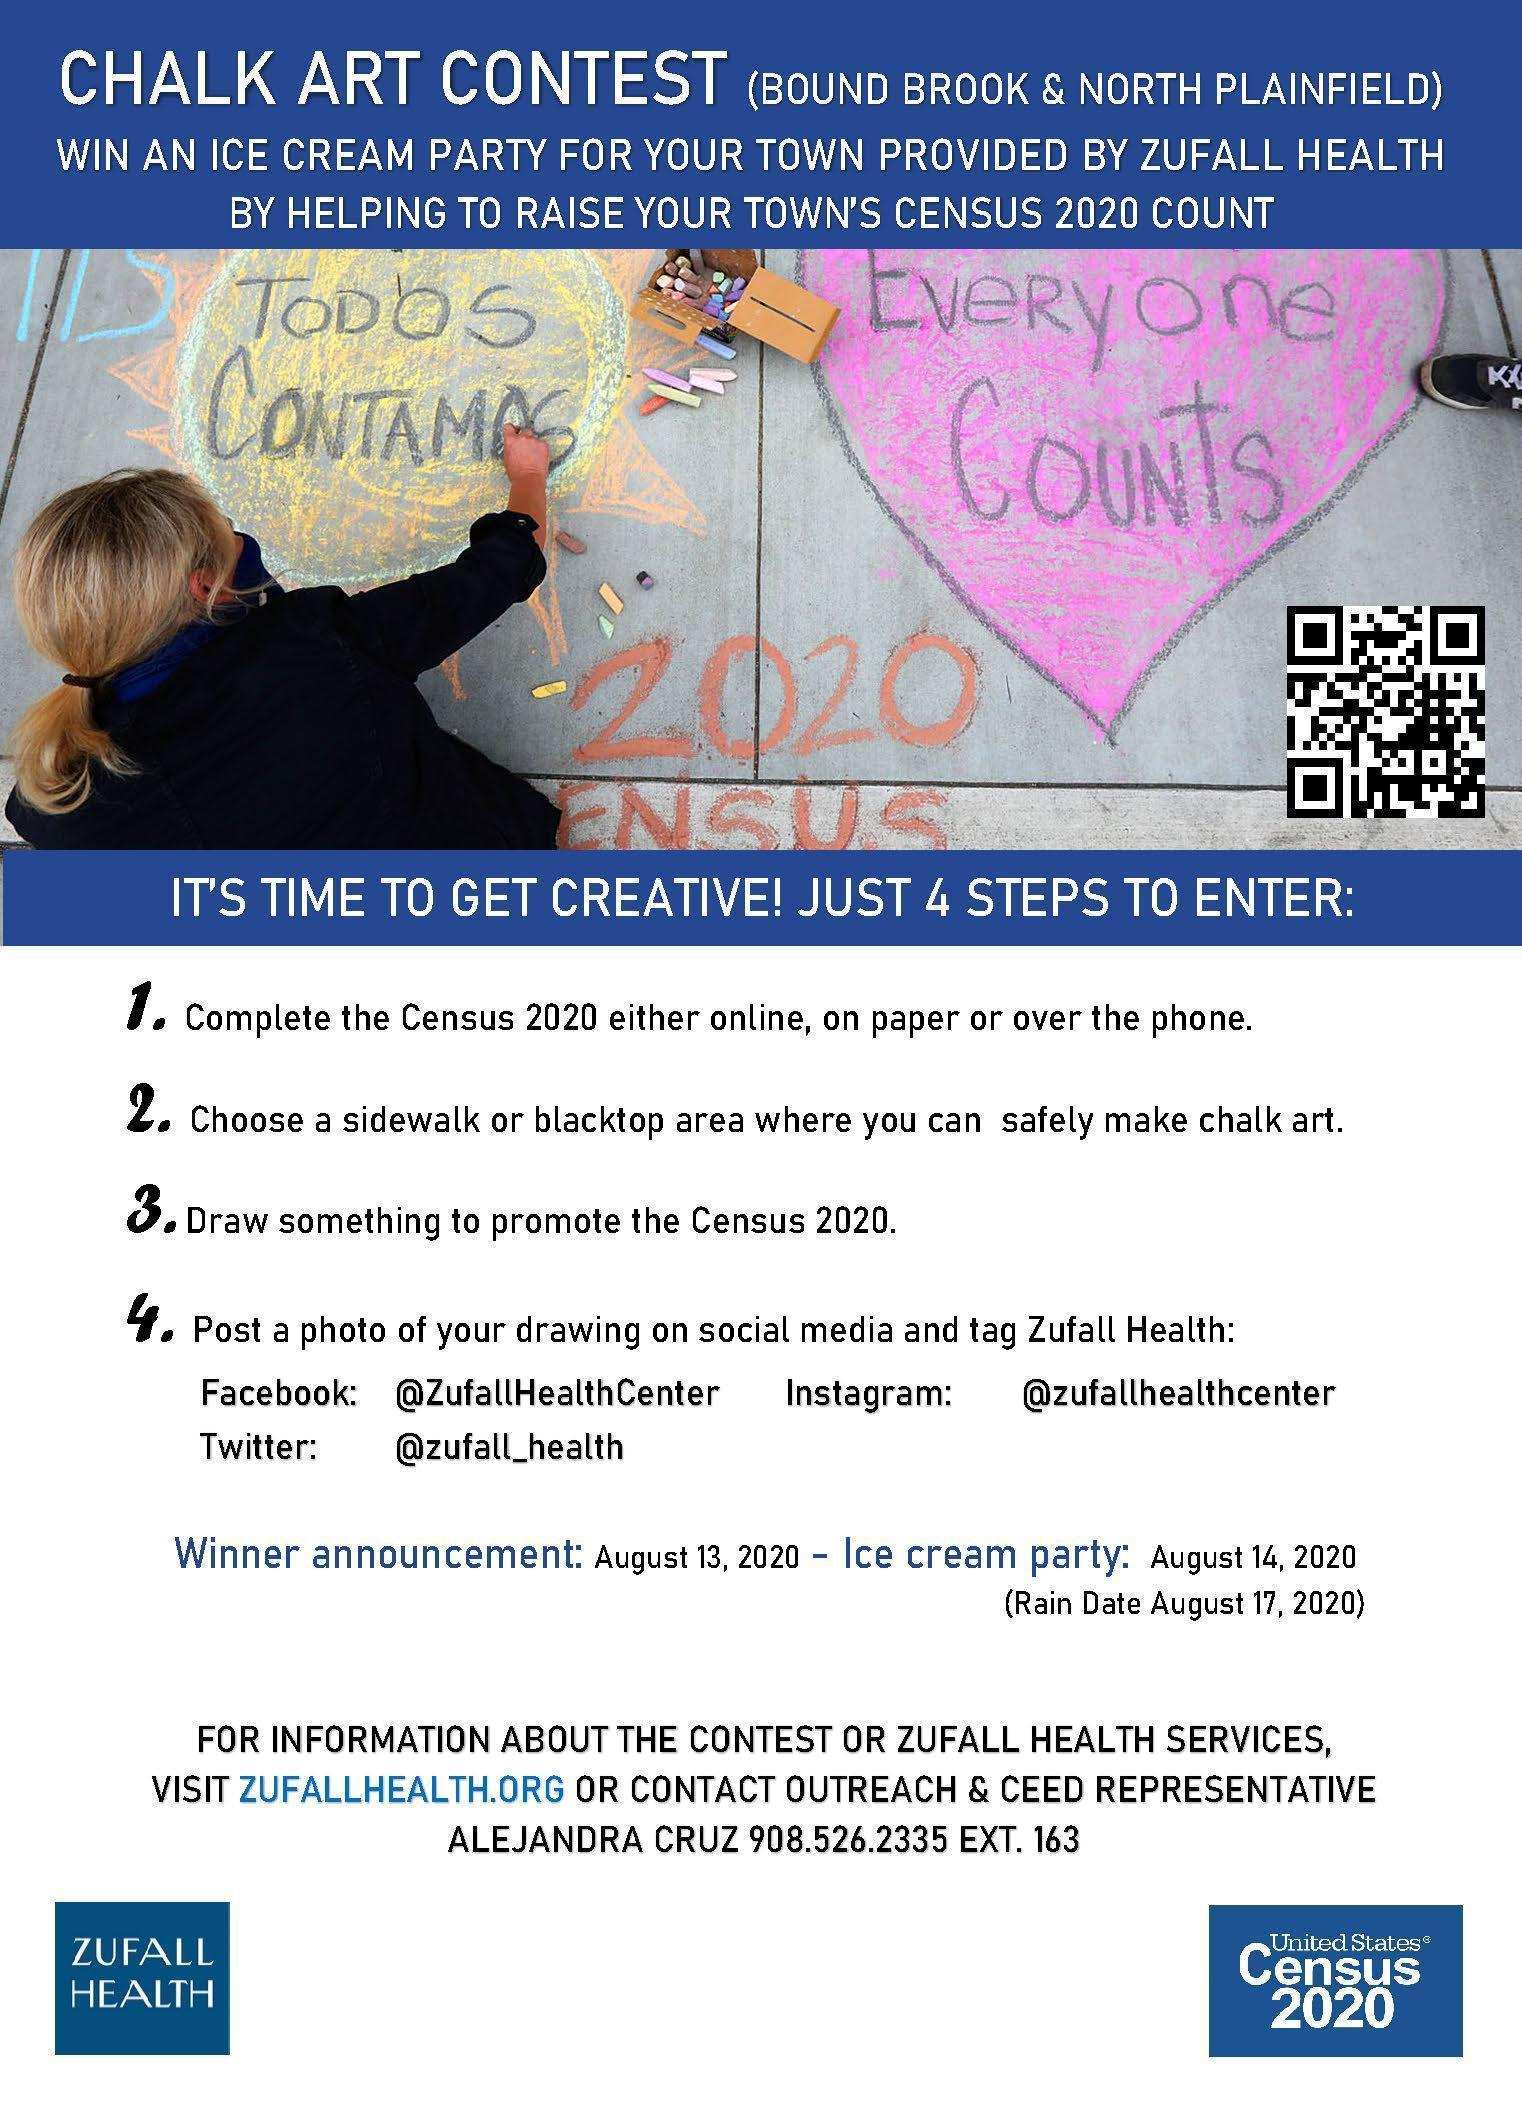 Flyer announcing a chalk art contest in North Plainfield and Bound Brook to help raise the towns' Census response rates.